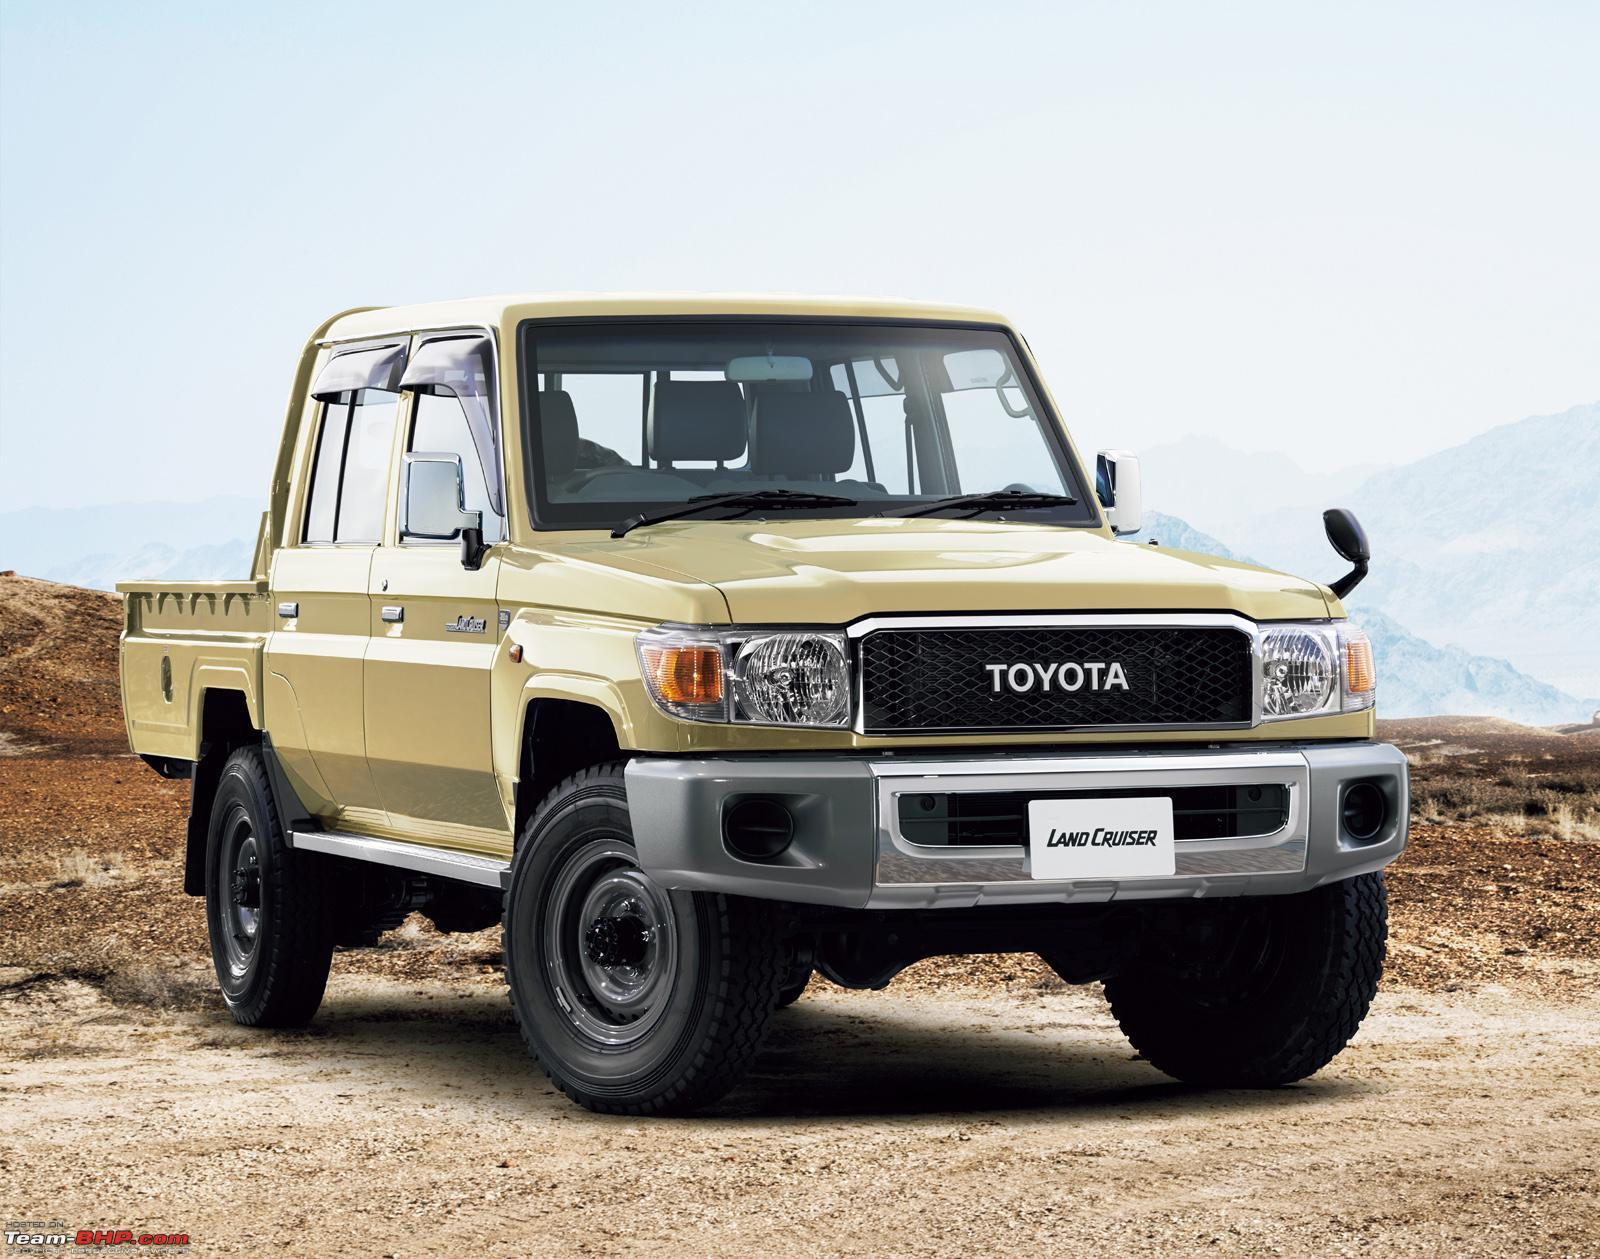 Land Cruiser Archives Pf Adventure 1960s Toyota Jeep J70 1984 Present